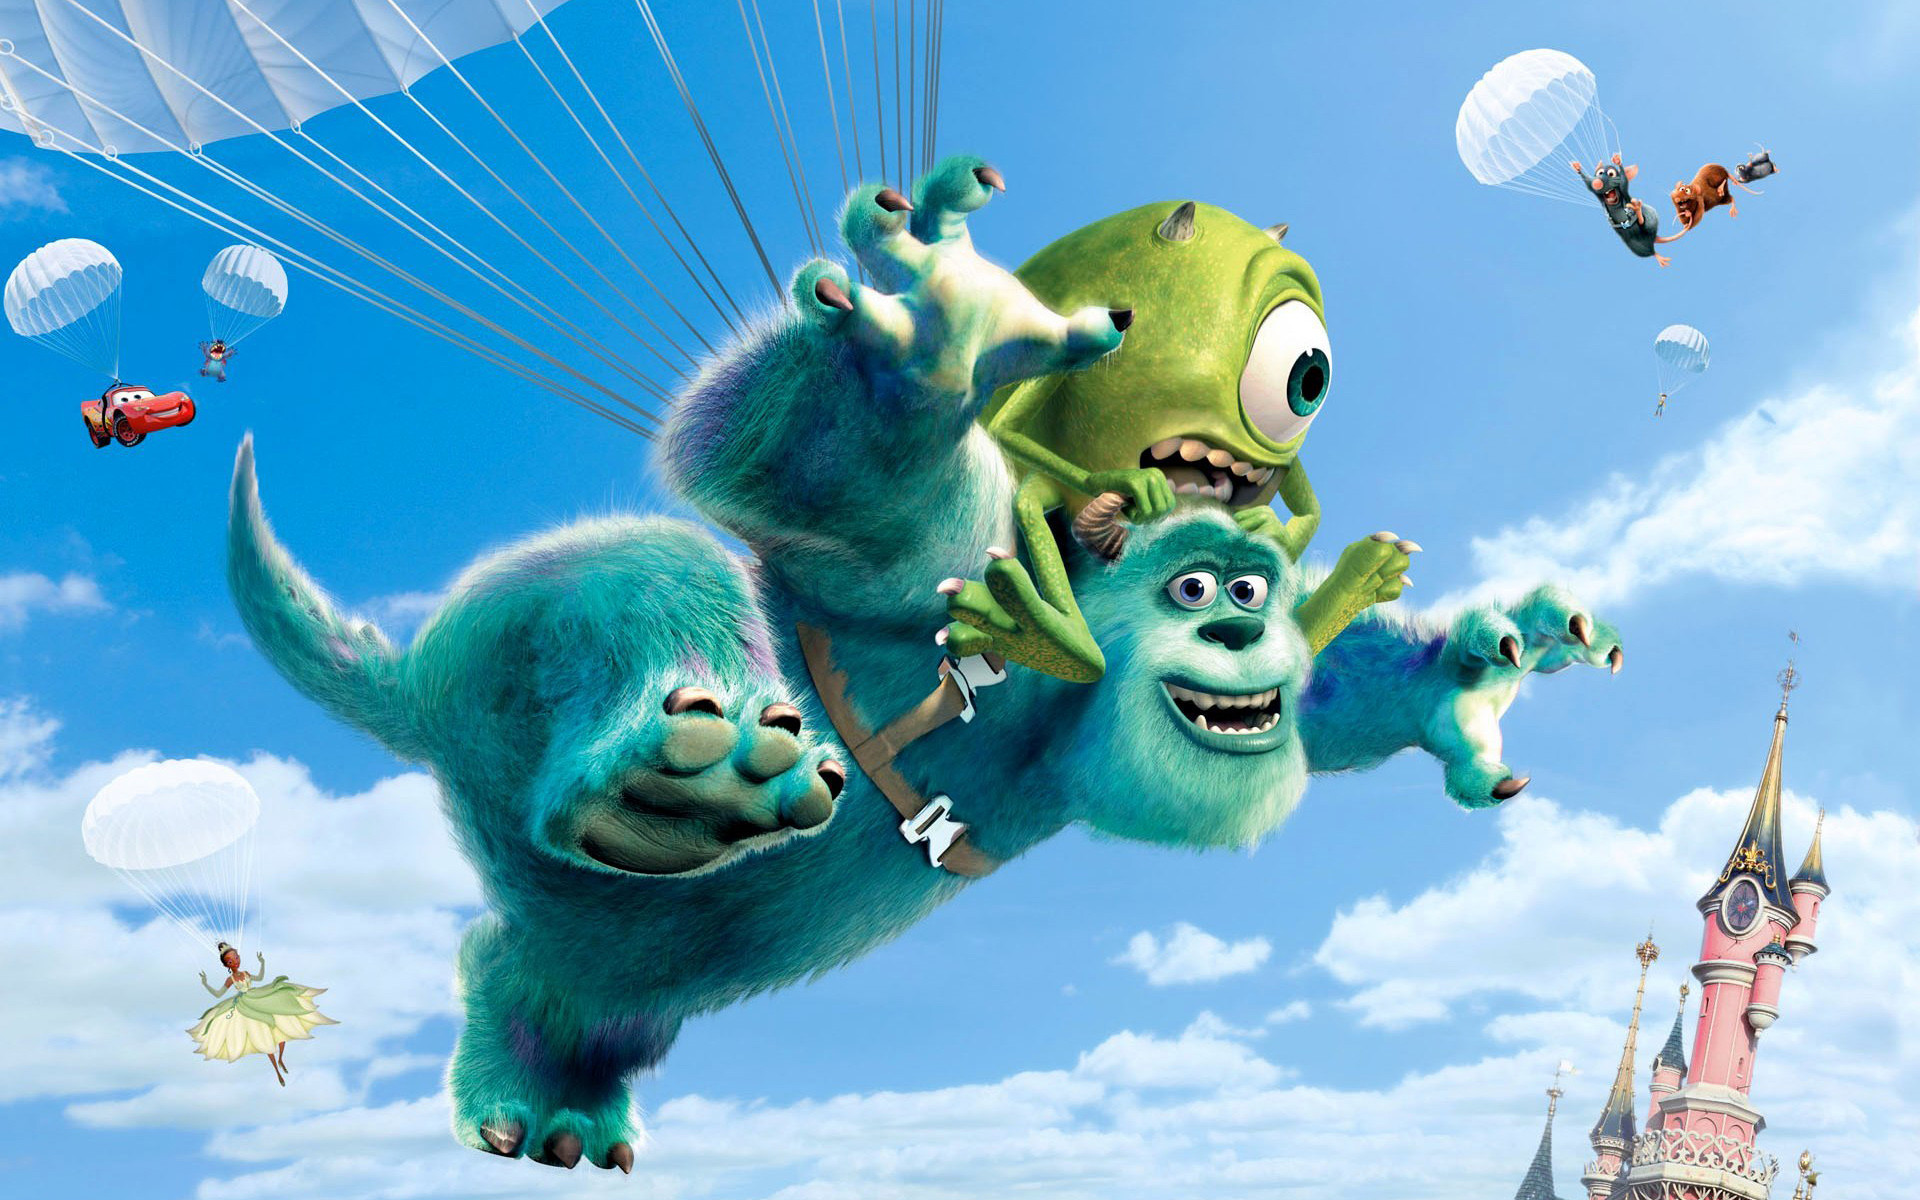 Res: 1920x1200, Tags: Disney Monsters Movies University. Description: Download Disney  Movies Monsters University wallpaper ...